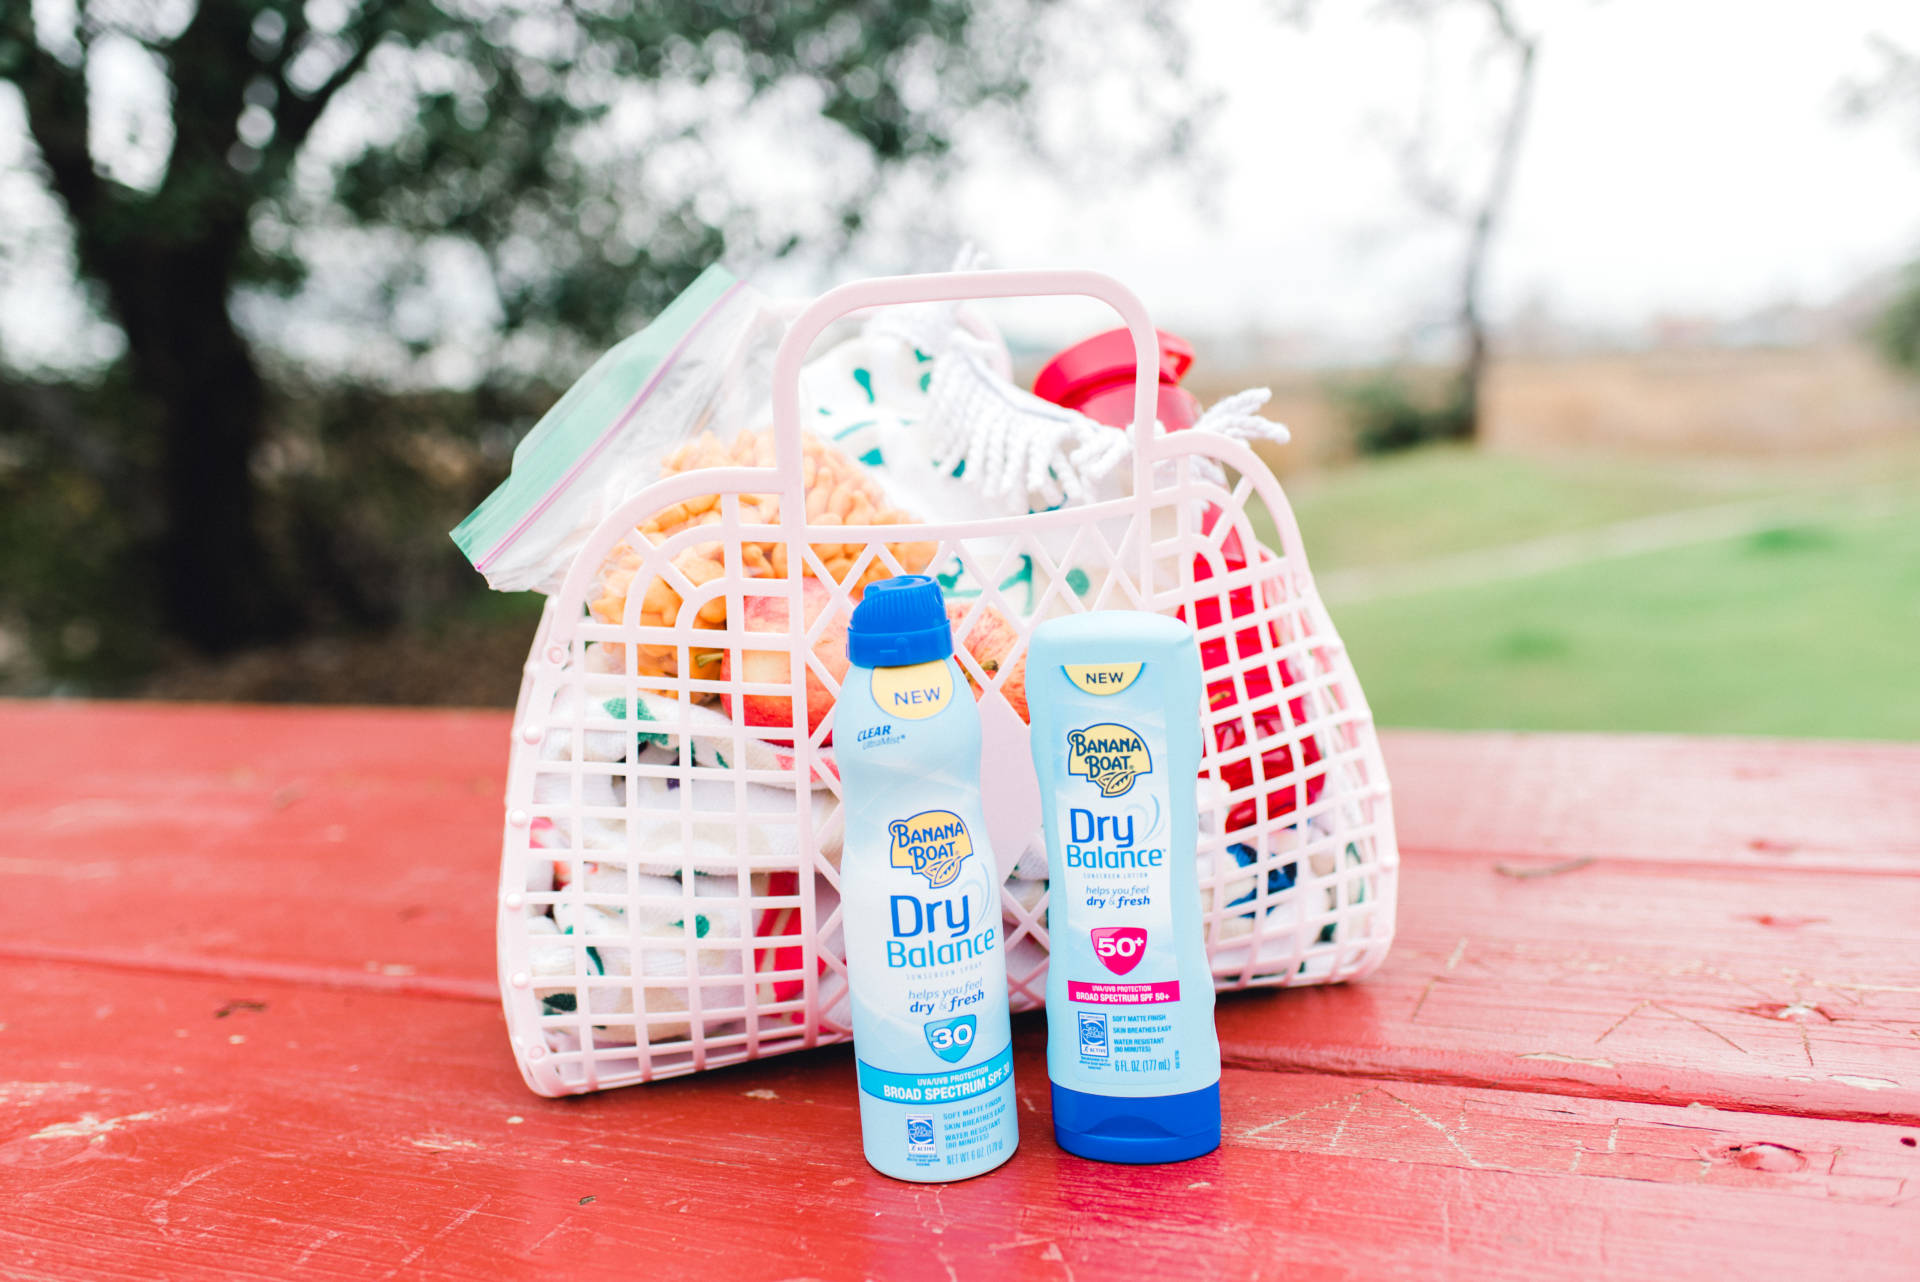 Family Park Play with Banana Boat Dry Balance: Provides safe and effective broad spectrum UVA and UVB protection. Lightweight, non-greasy formula draws away excess moisture while allowing skin to breathe. Stays on in seven conditions – sun, pool water, ocean water, wind, sweat, sand and even 100 degree heat*